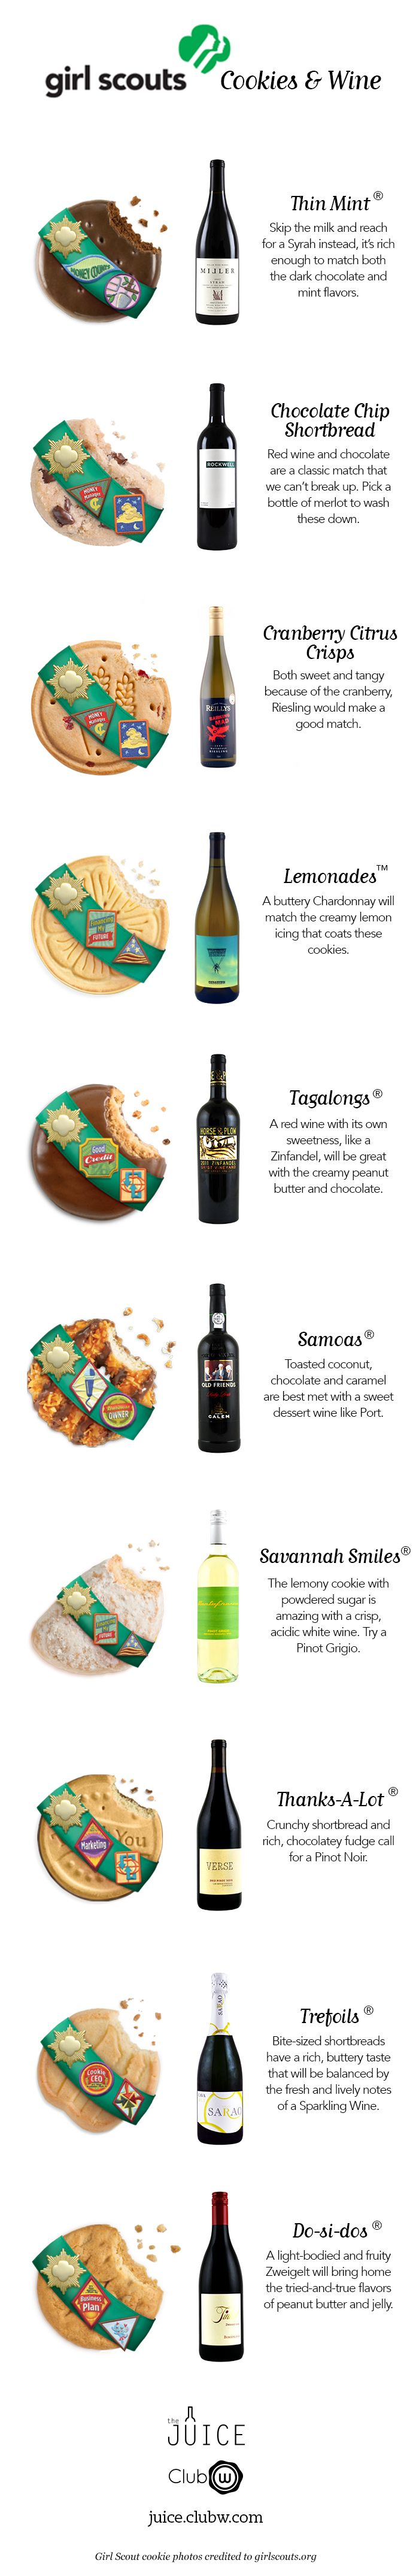 Girl Scout Cookies & Wine Pairings! @Megan Ward Ward Ward Ward Ward Gilmartin I know what we're doing for girls night in